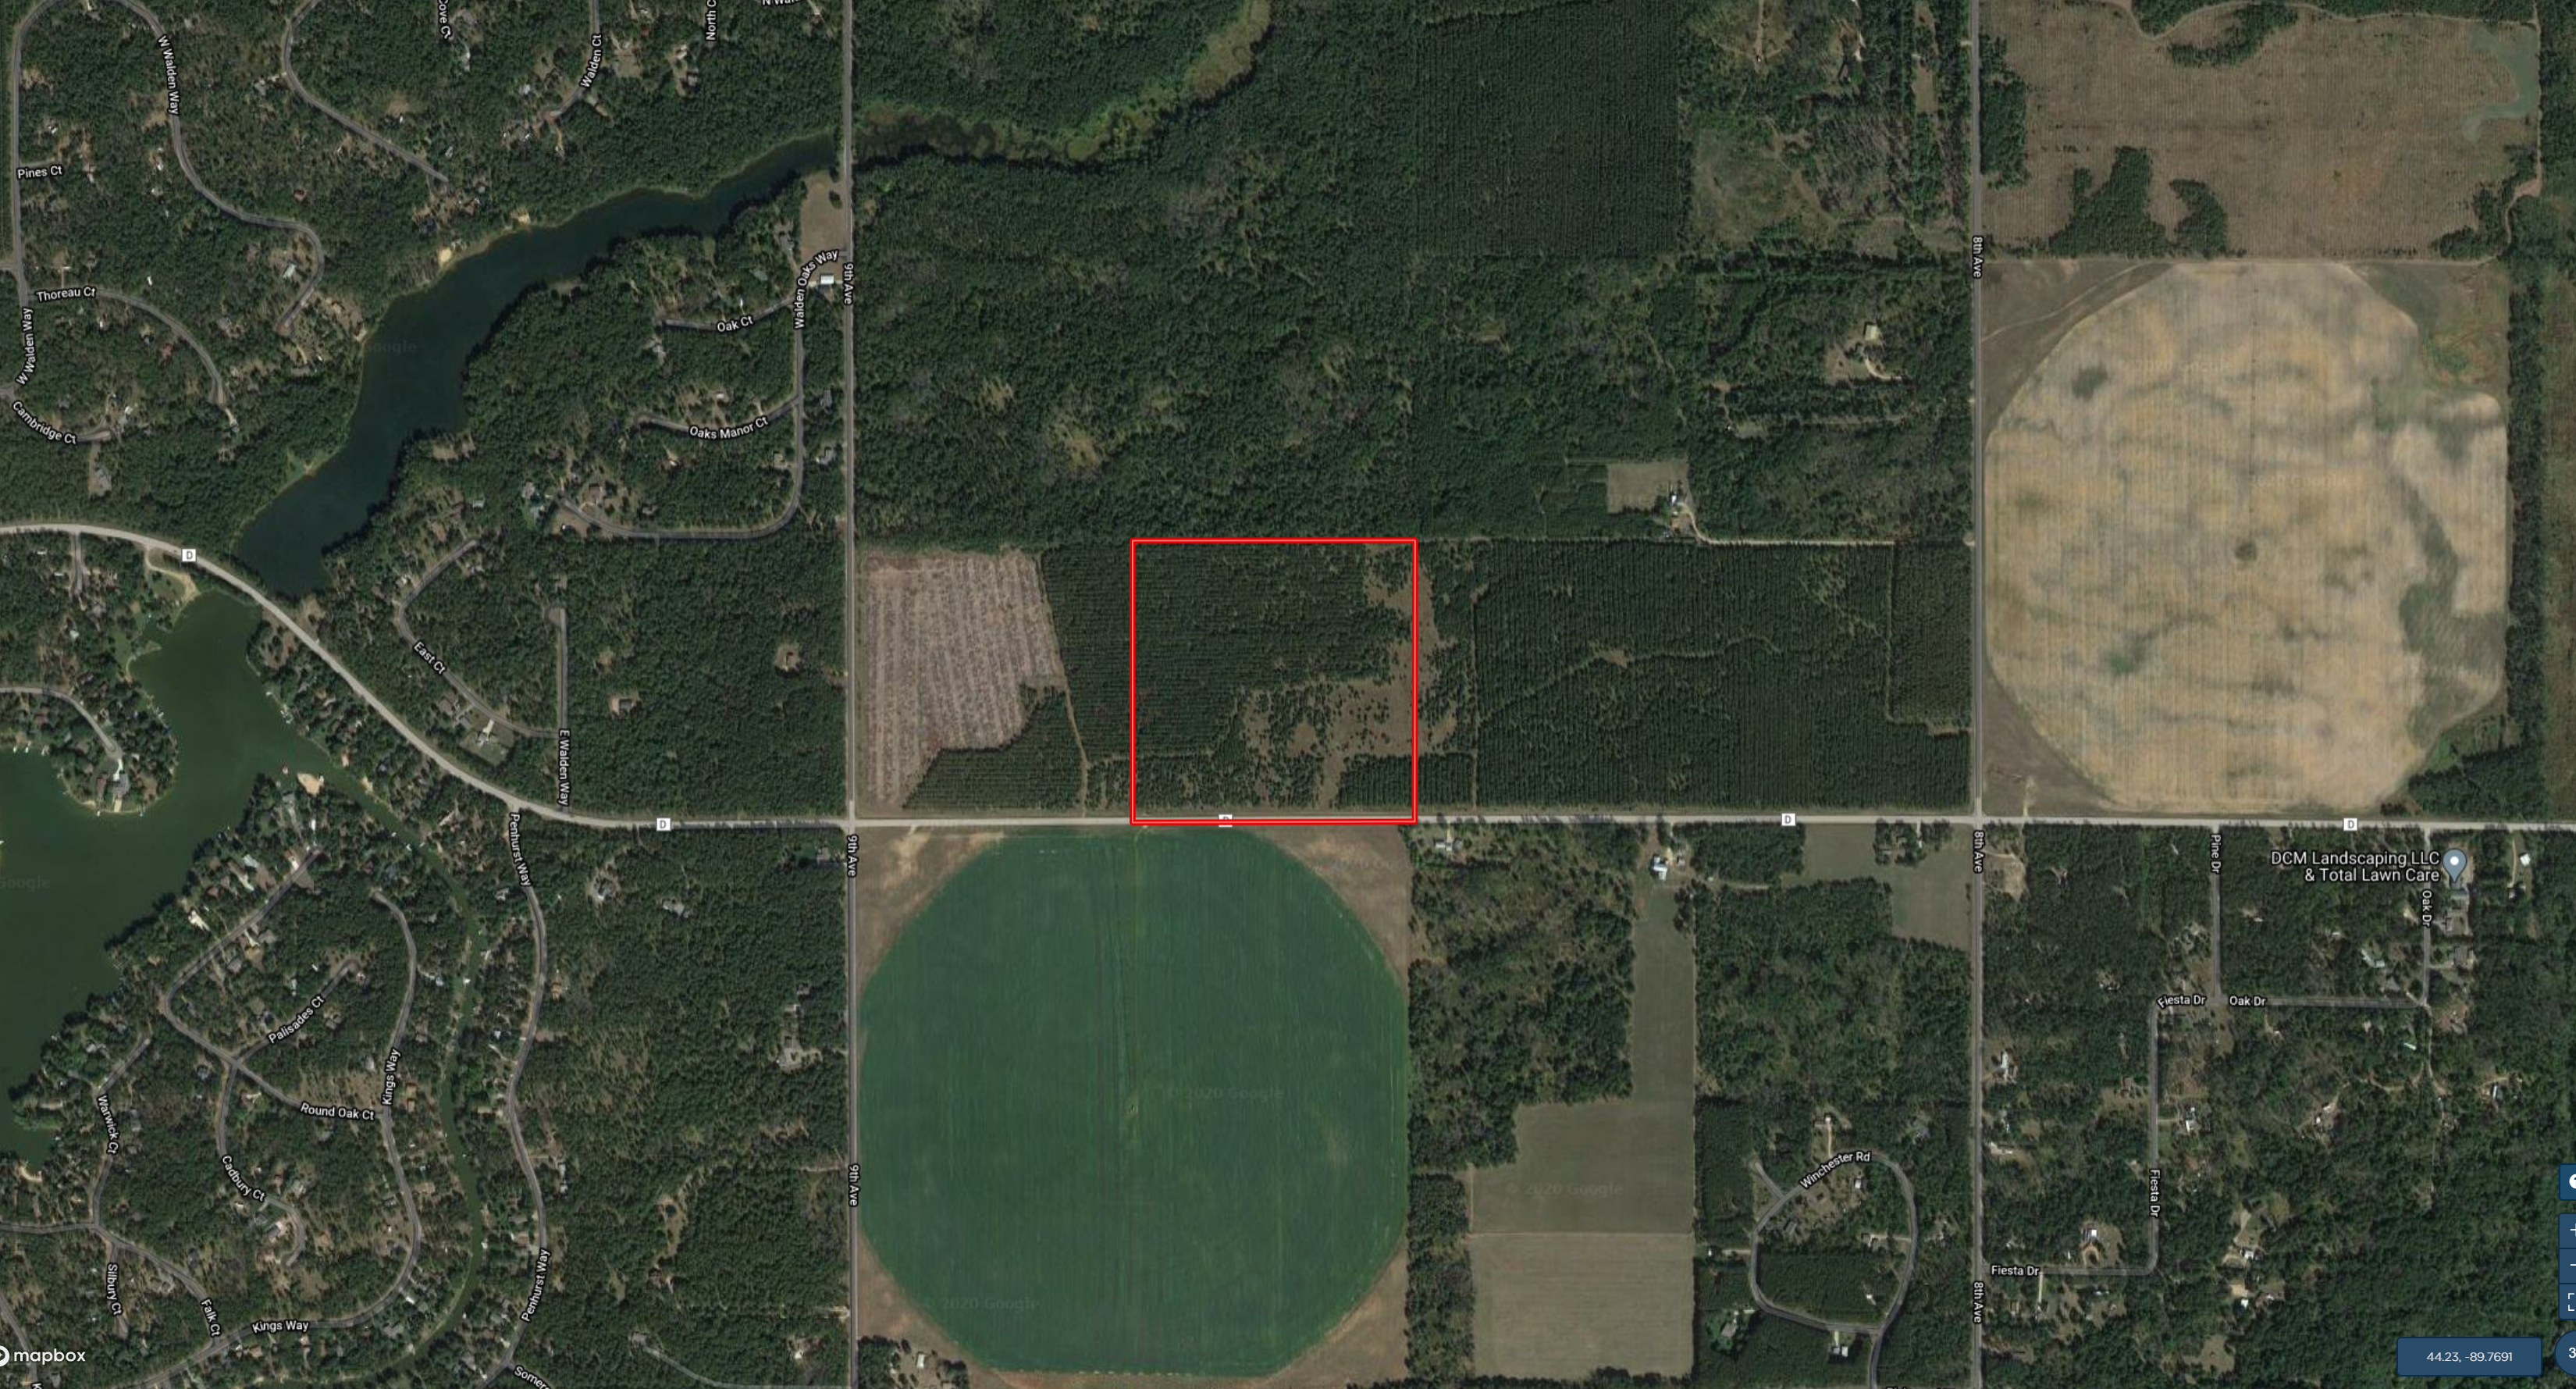 Town of Rome 120 acre timber lot for sale in Adams County WI